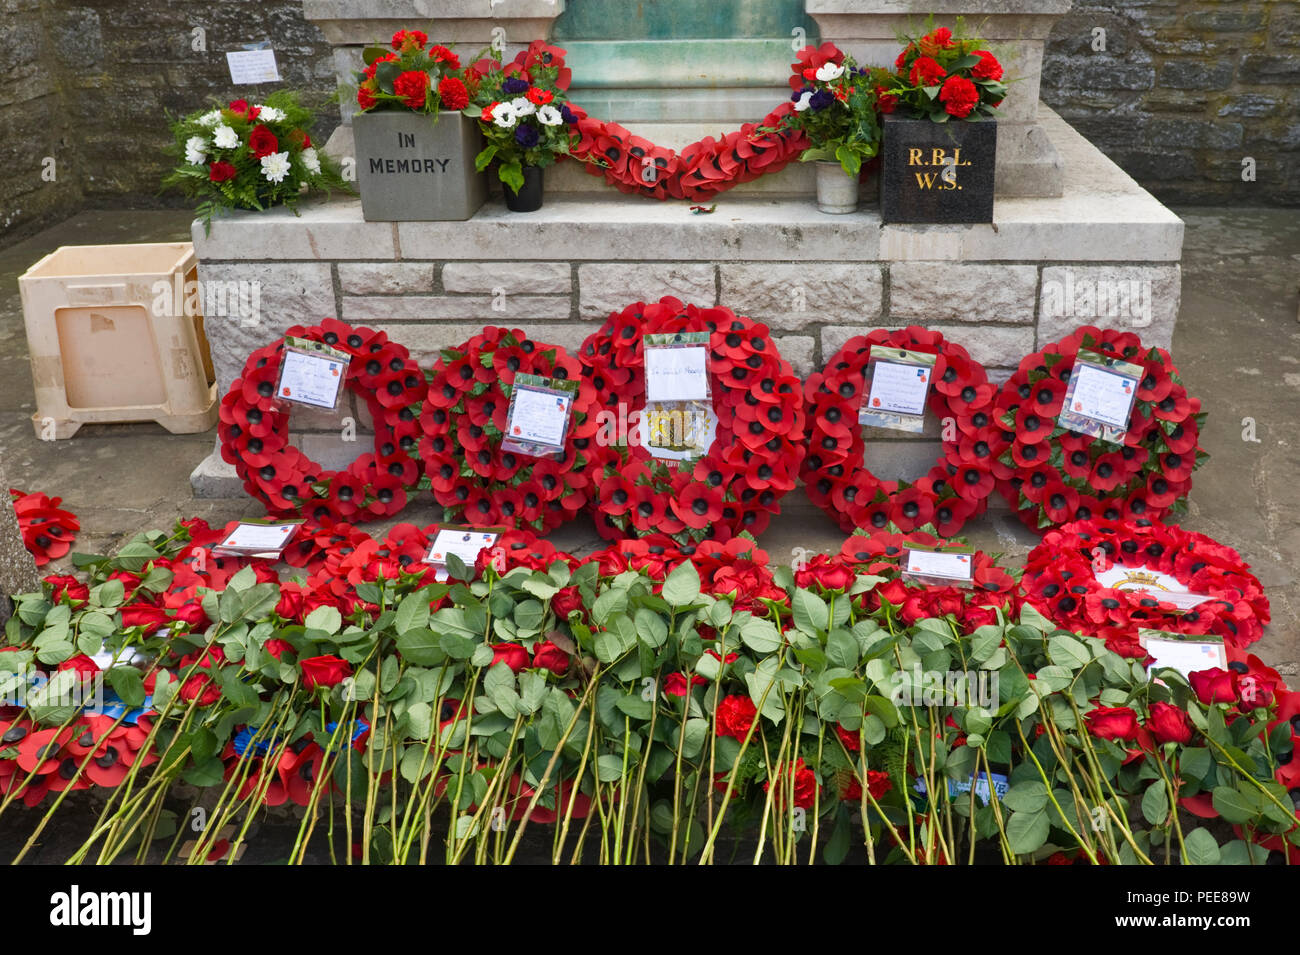 World War One commemorative event poppy wreaths & red roses laid around the War Memorial at Hay-on-Wye Powys Wales UK - Stock Image